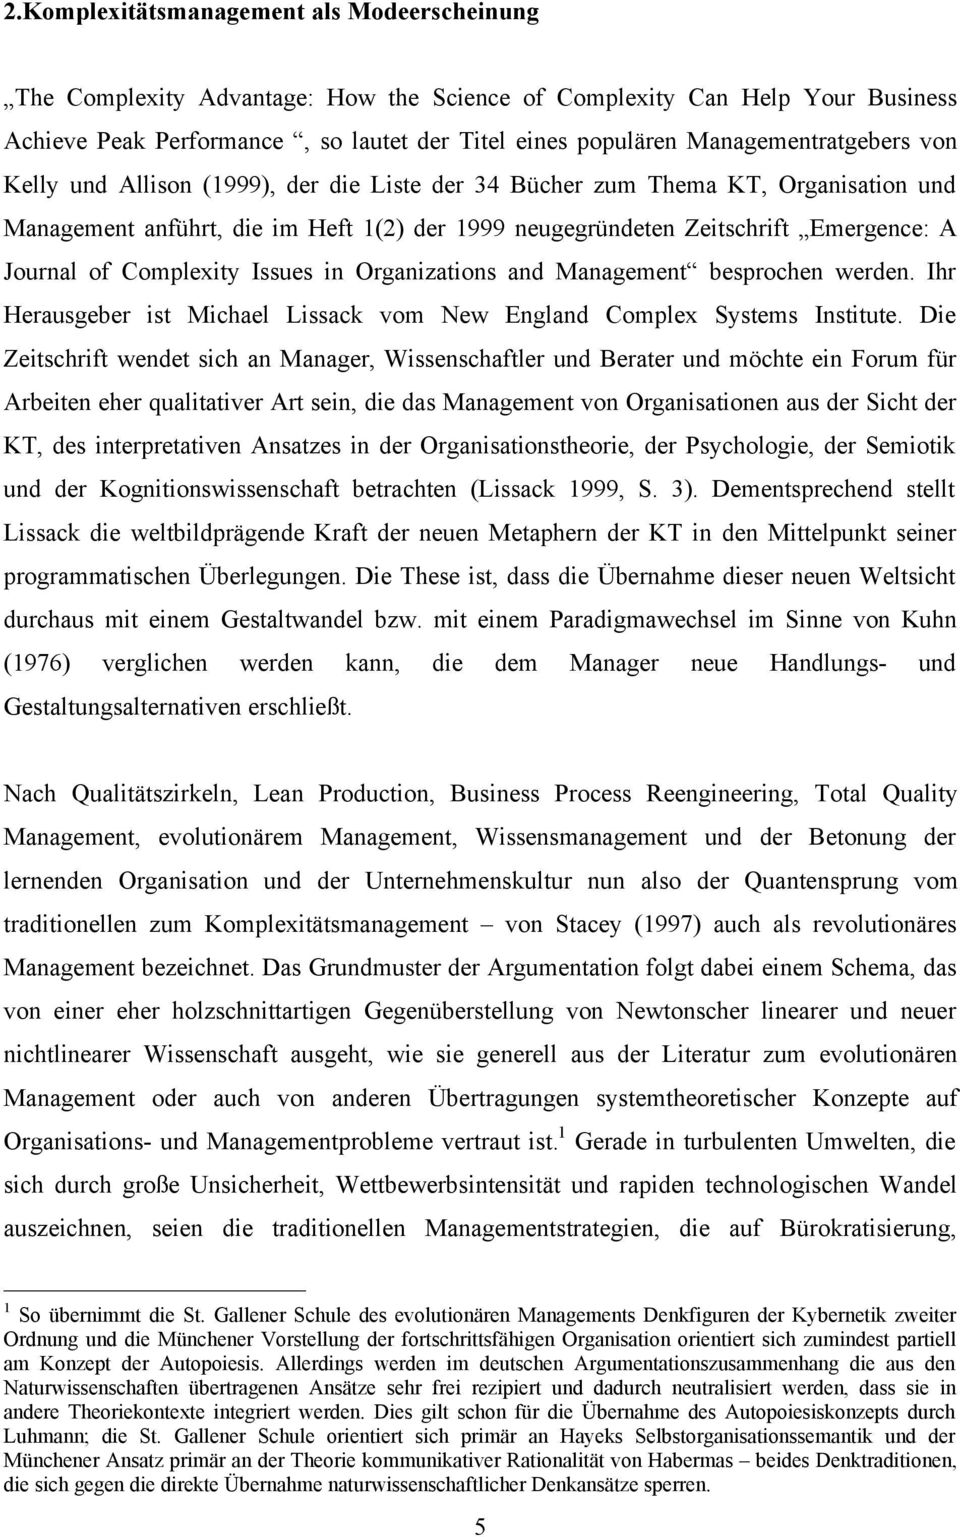 Journal of Complexity Issues in Organizations and Management besprochen werden. Ihr Herausgeber ist Michael Lissack vom New England Complex Systems Institute.